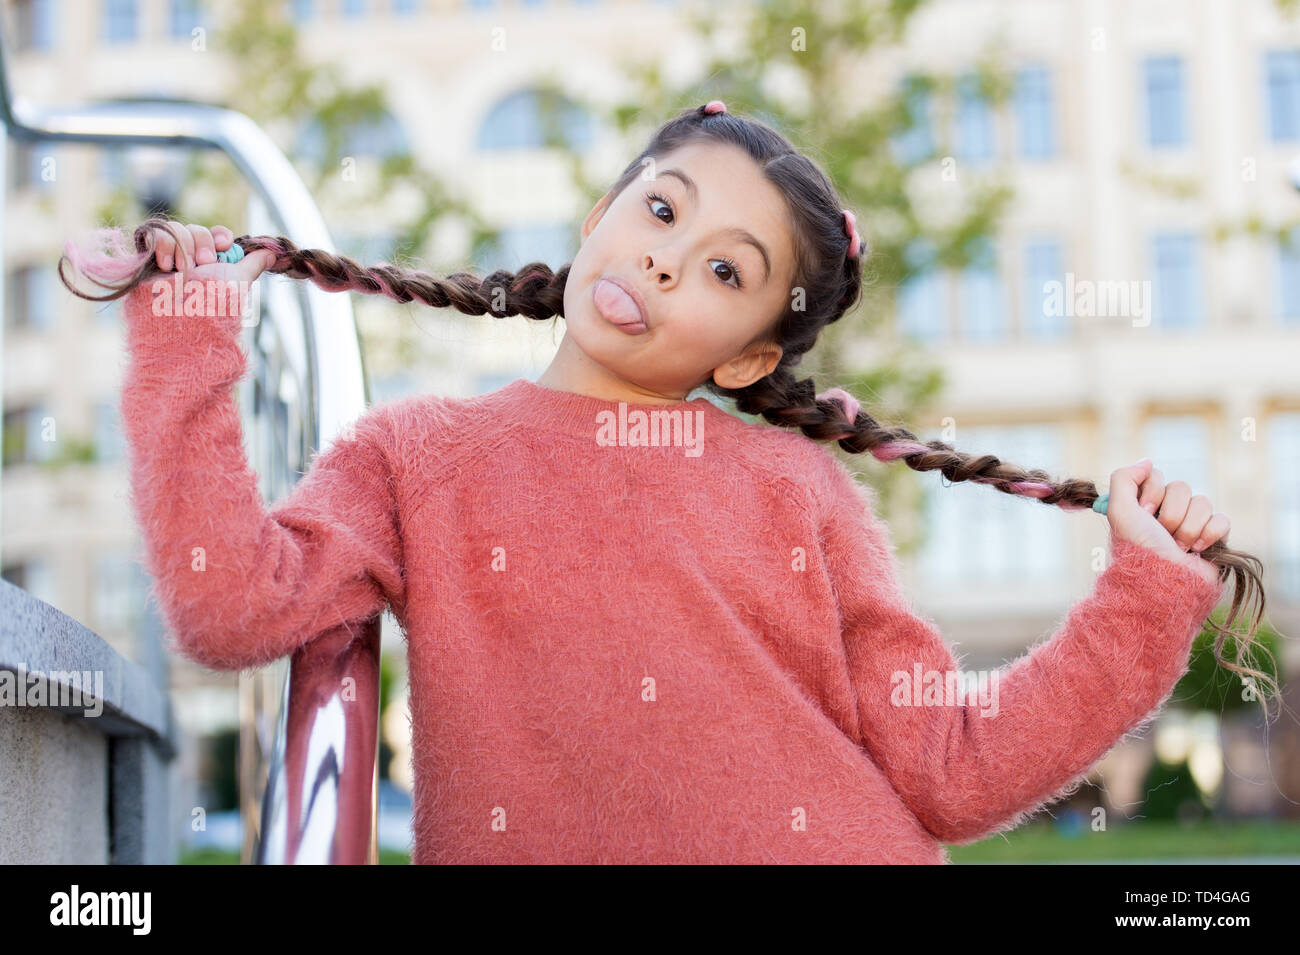 Having fun with her hair. Funny girl holding hair plaits on urban background. Small cute girl with long brunette hair showing tongue outdoor. Little hair model with crazy look. - Stock Image